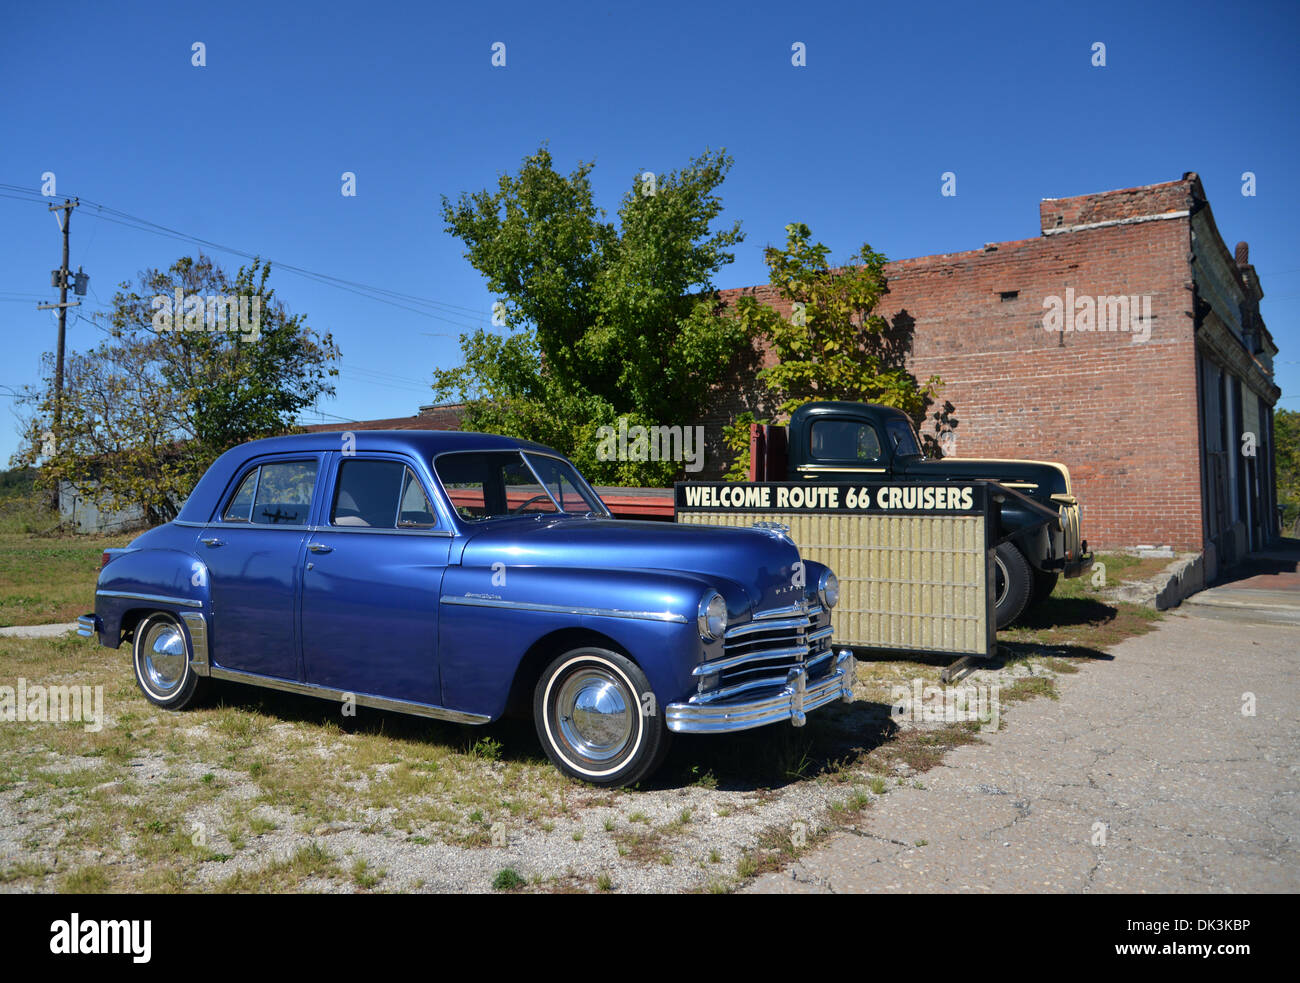 1948 Plymouth Special De Luxe parked by a 'Welcome Route 66 Cruisers' sign and a 40s Ford truck in Galena, Kansas - Stock Image